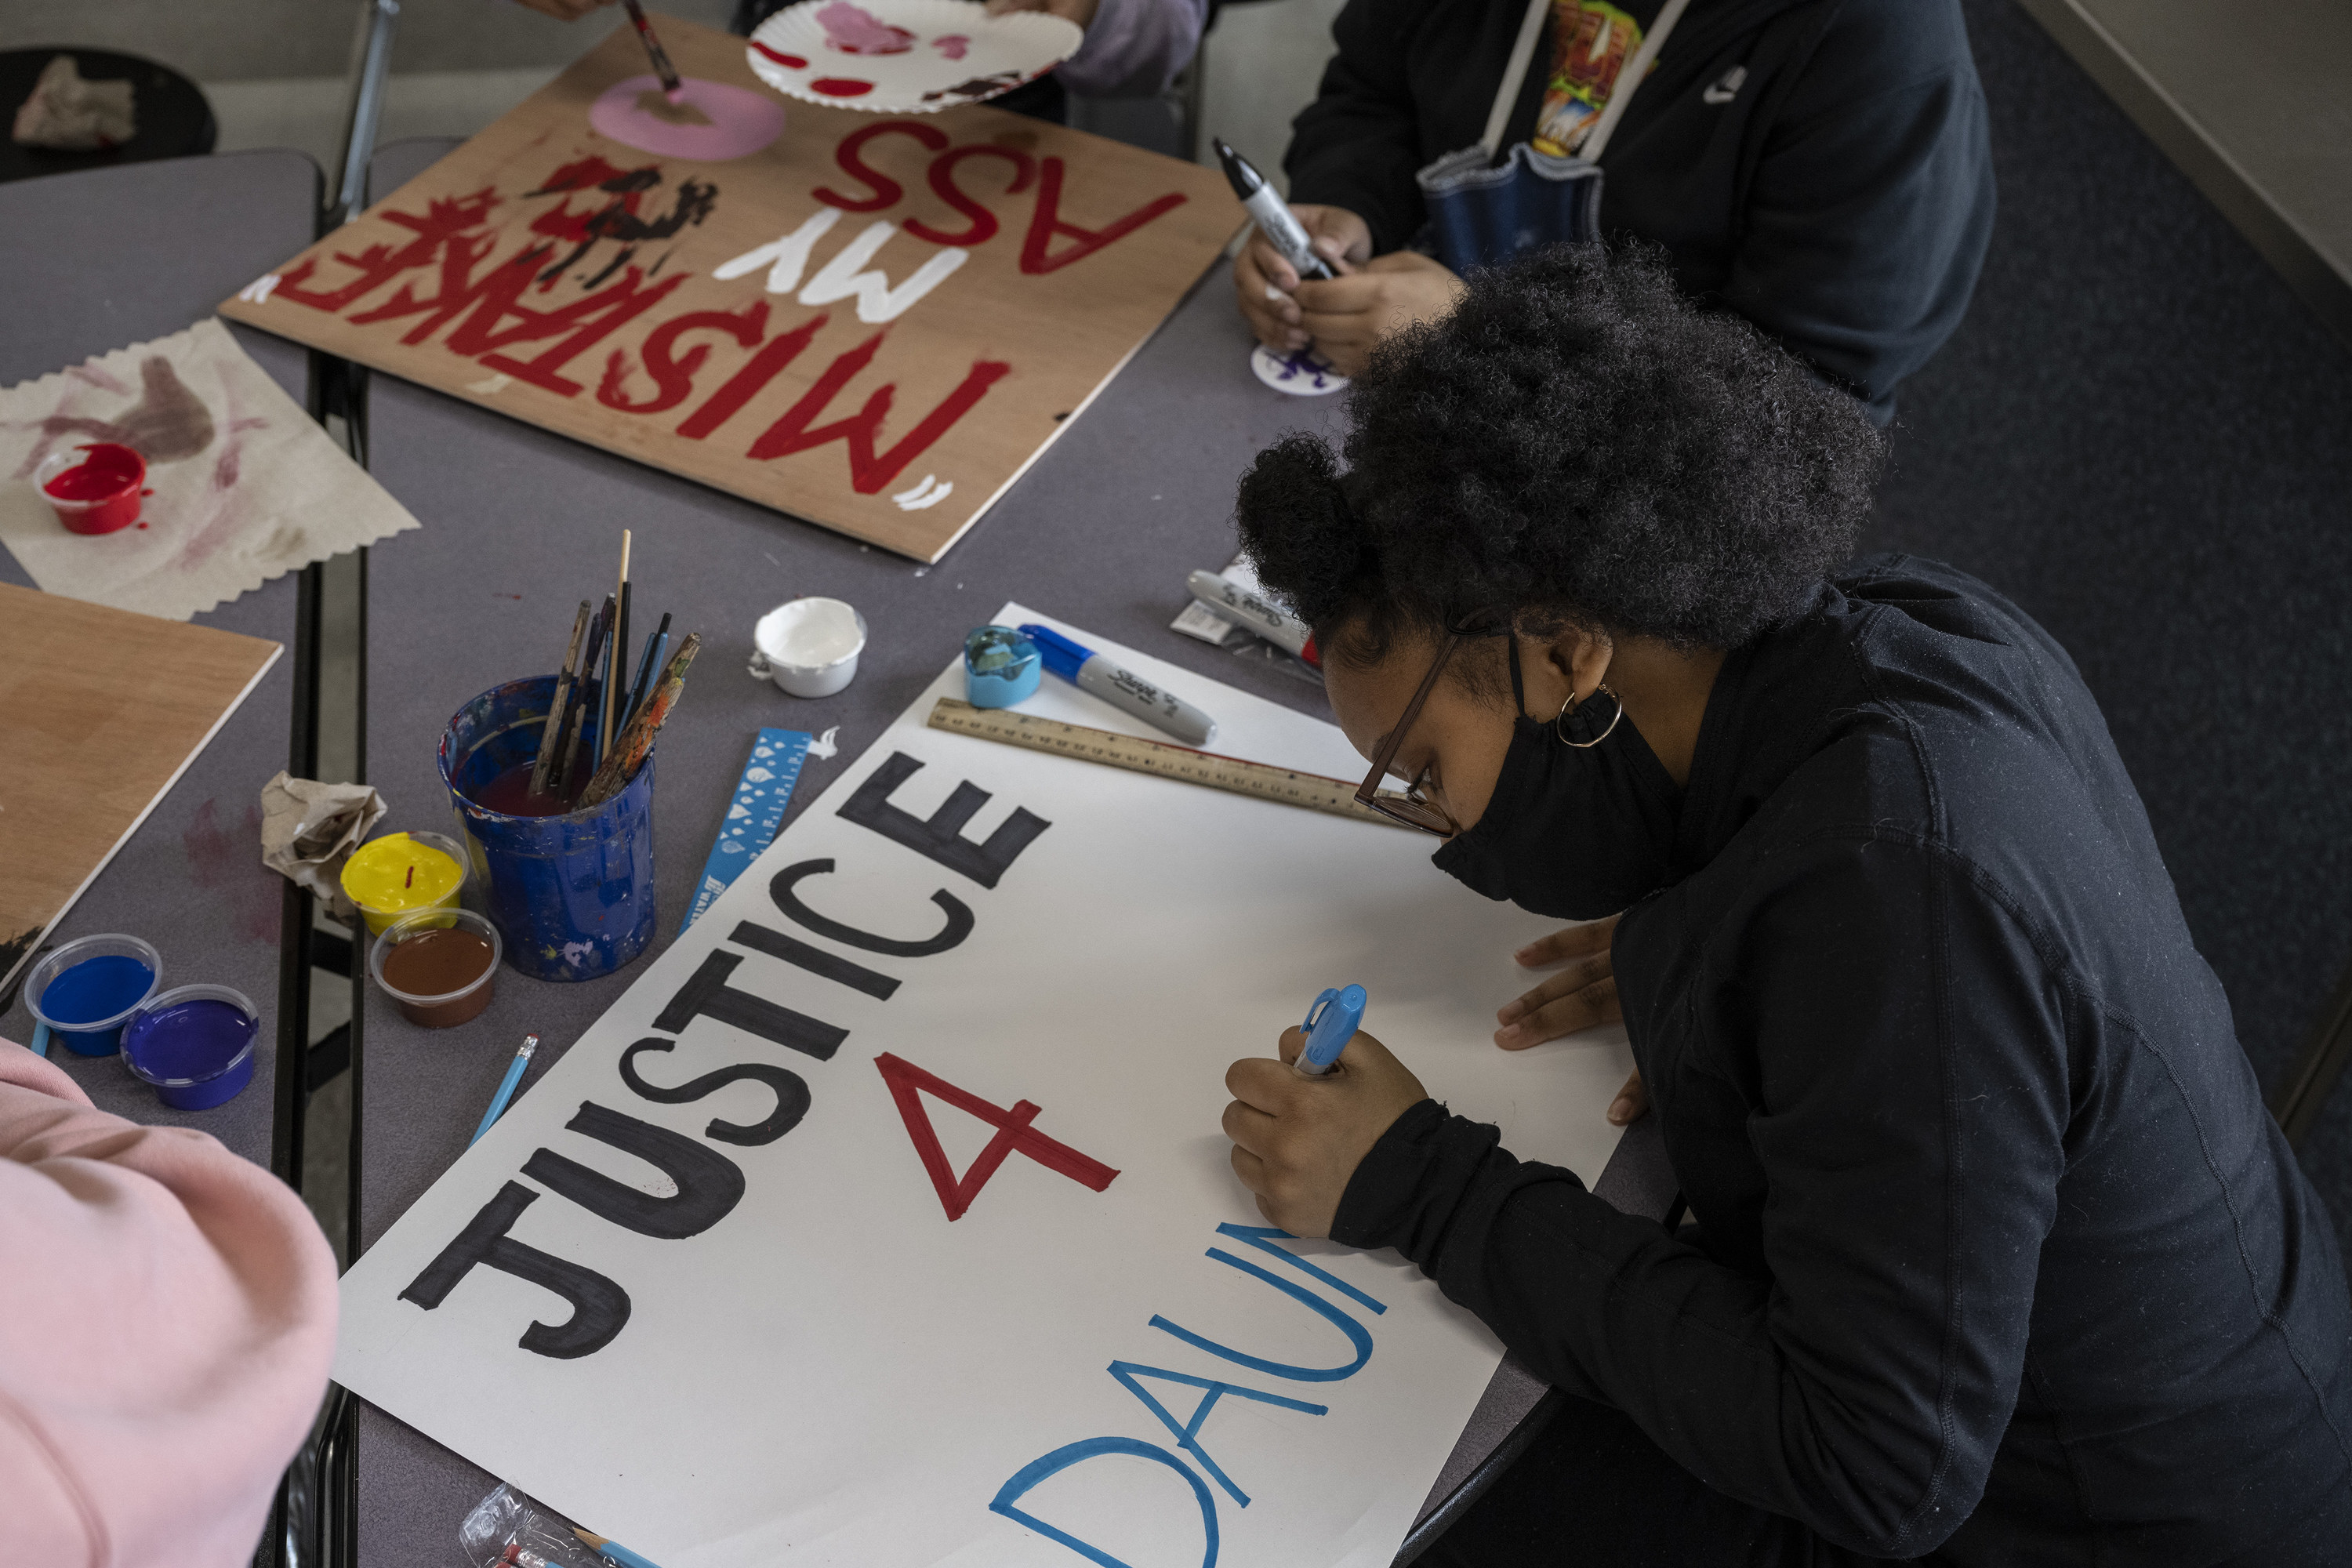 """A Black student wearing a face mask sits at a table with art supplies and fills in a protest sign that reads """"Justice for Daunte"""""""